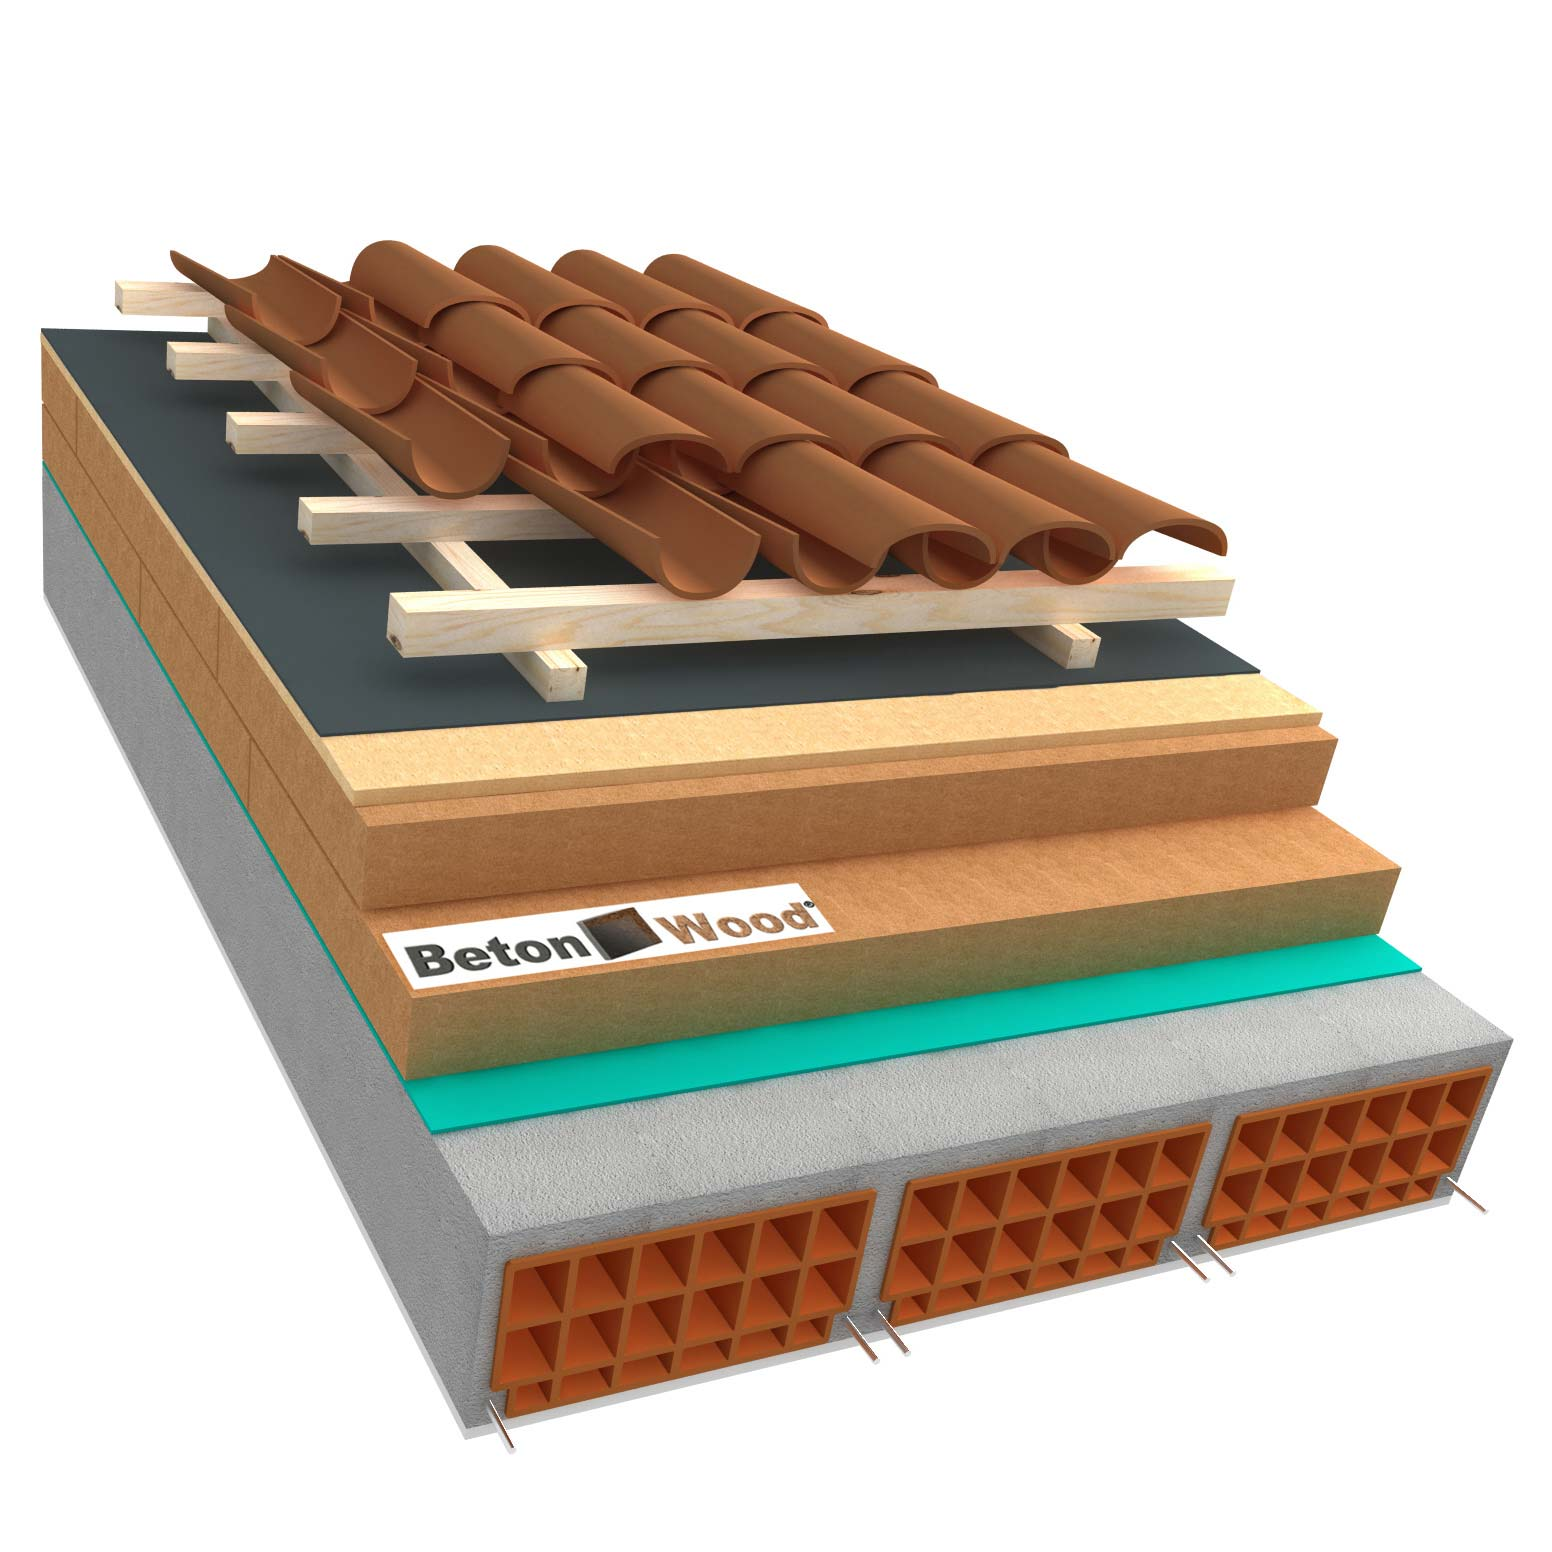 Ventilated roof with fiber wood Isorel and Special on concrete